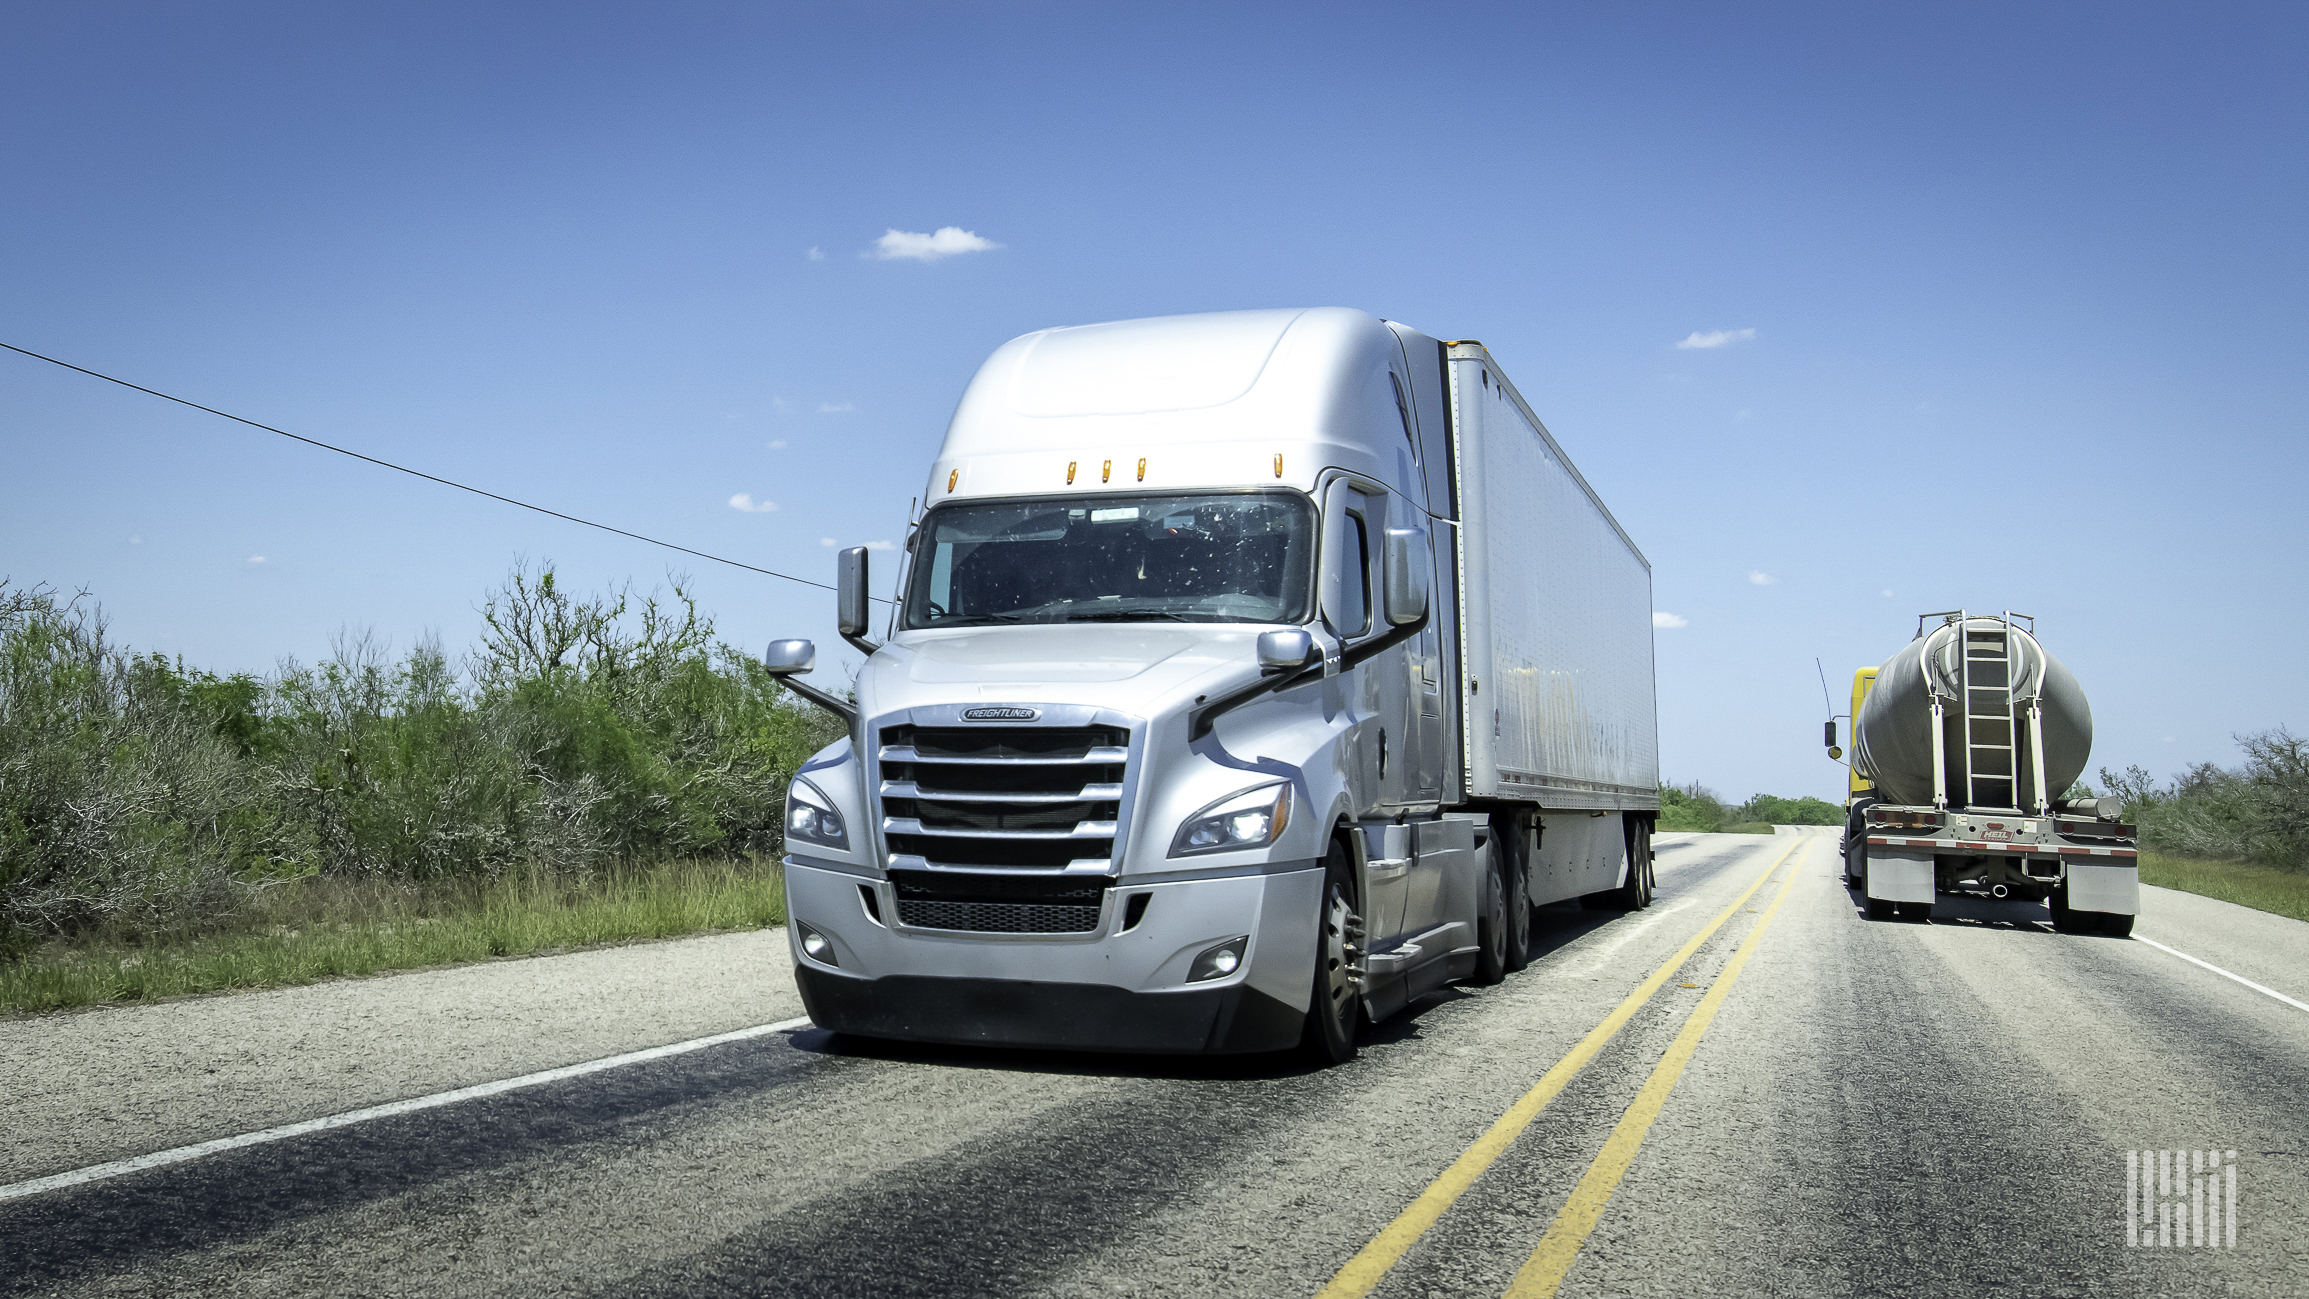 Supply chain headwinds to continue for a while, according to Cass